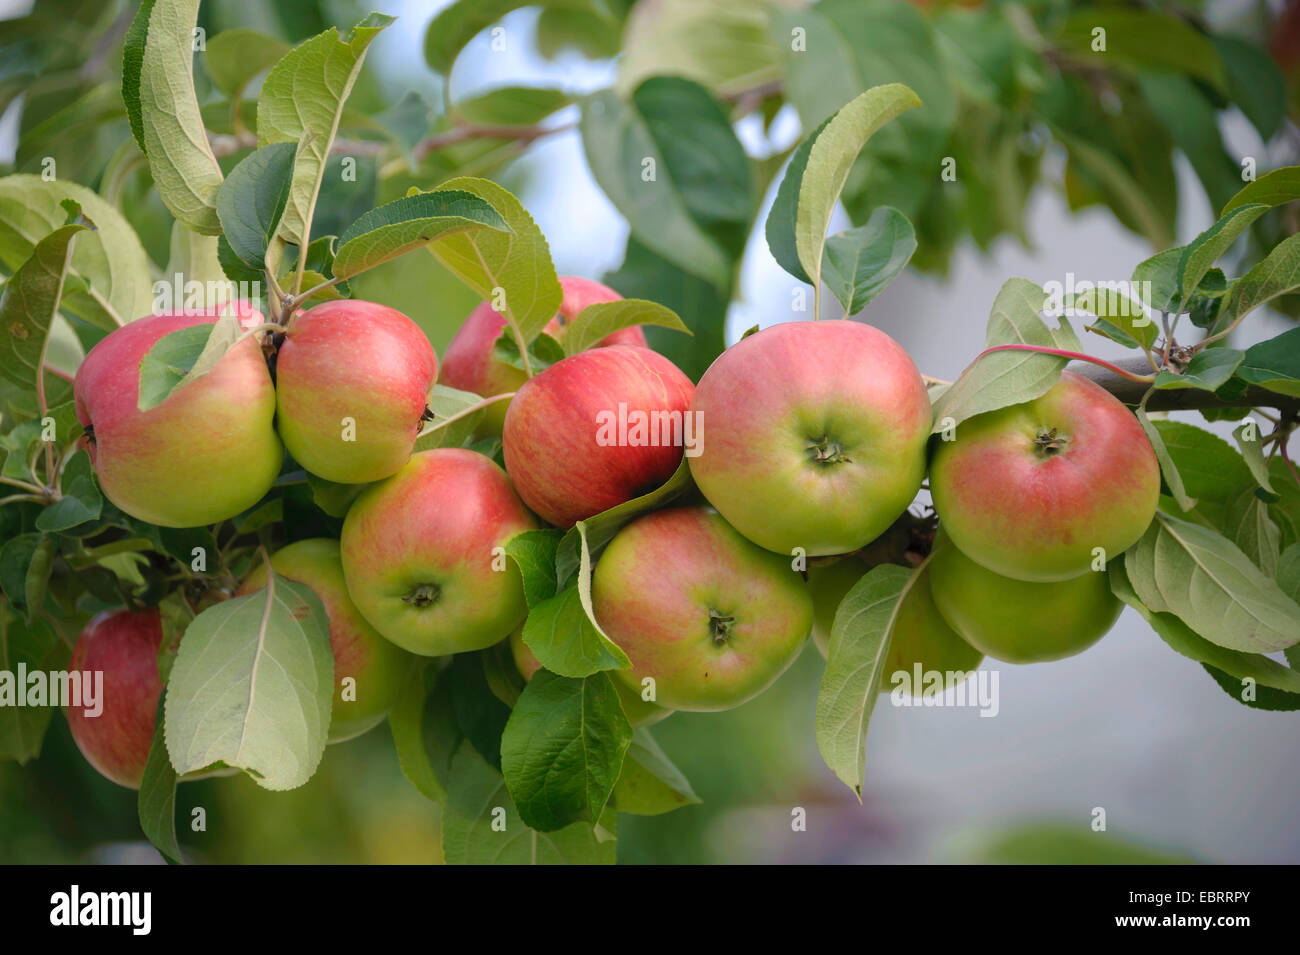 malus cultivar stockfotos malus cultivar bilder alamy. Black Bedroom Furniture Sets. Home Design Ideas